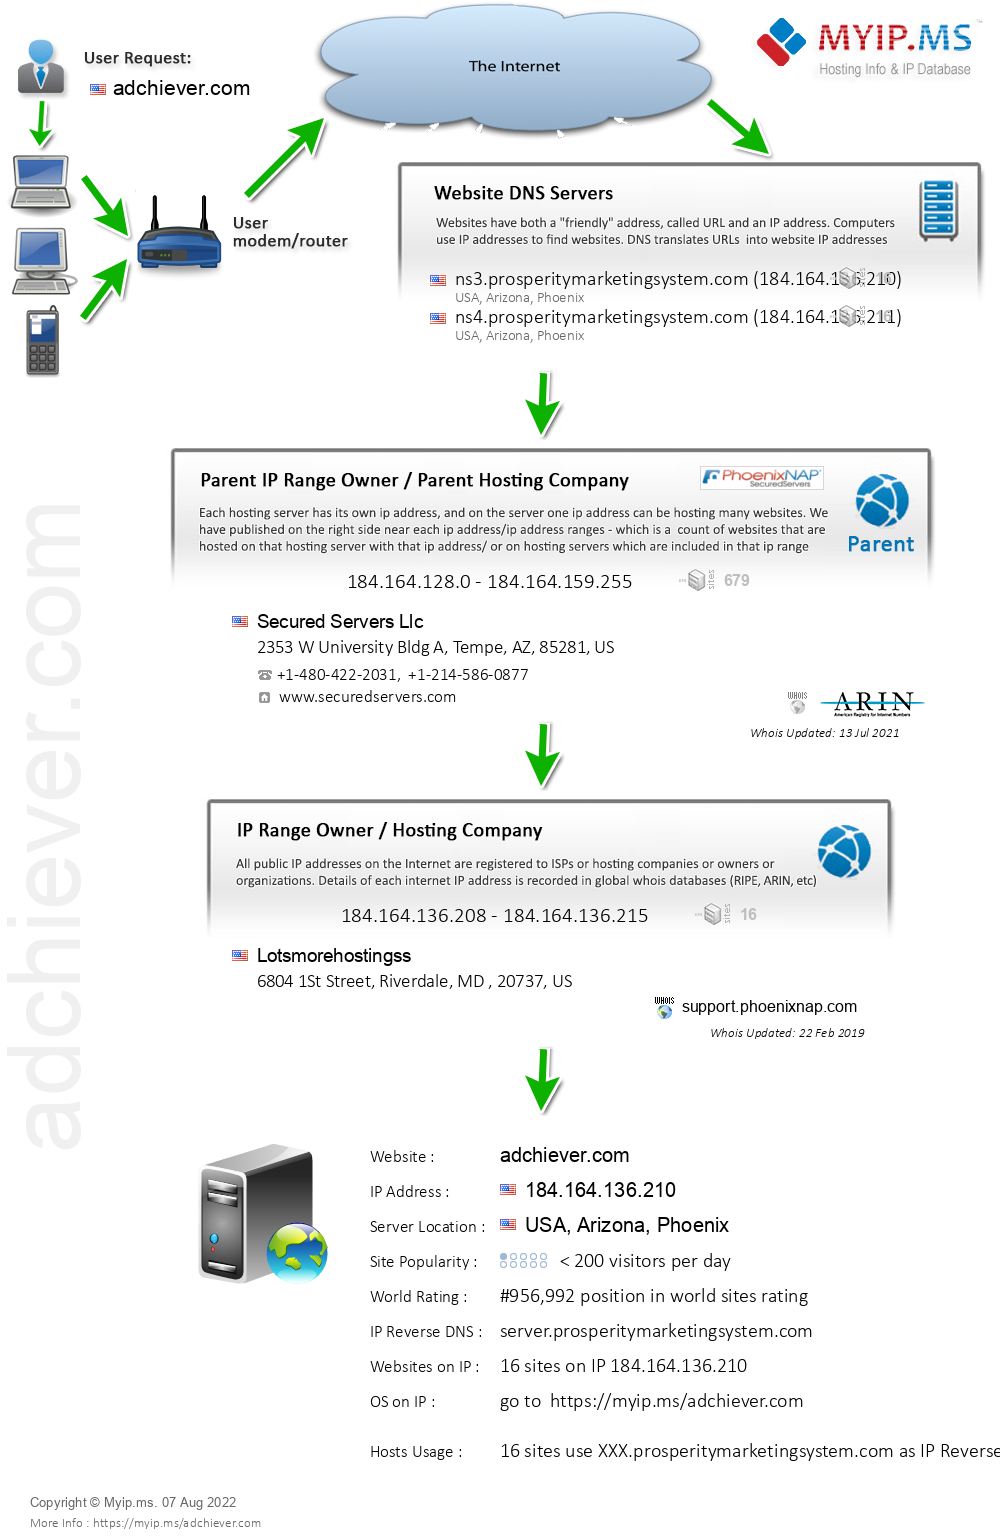 Adchiever.com - Website Hosting Visual IP Diagram